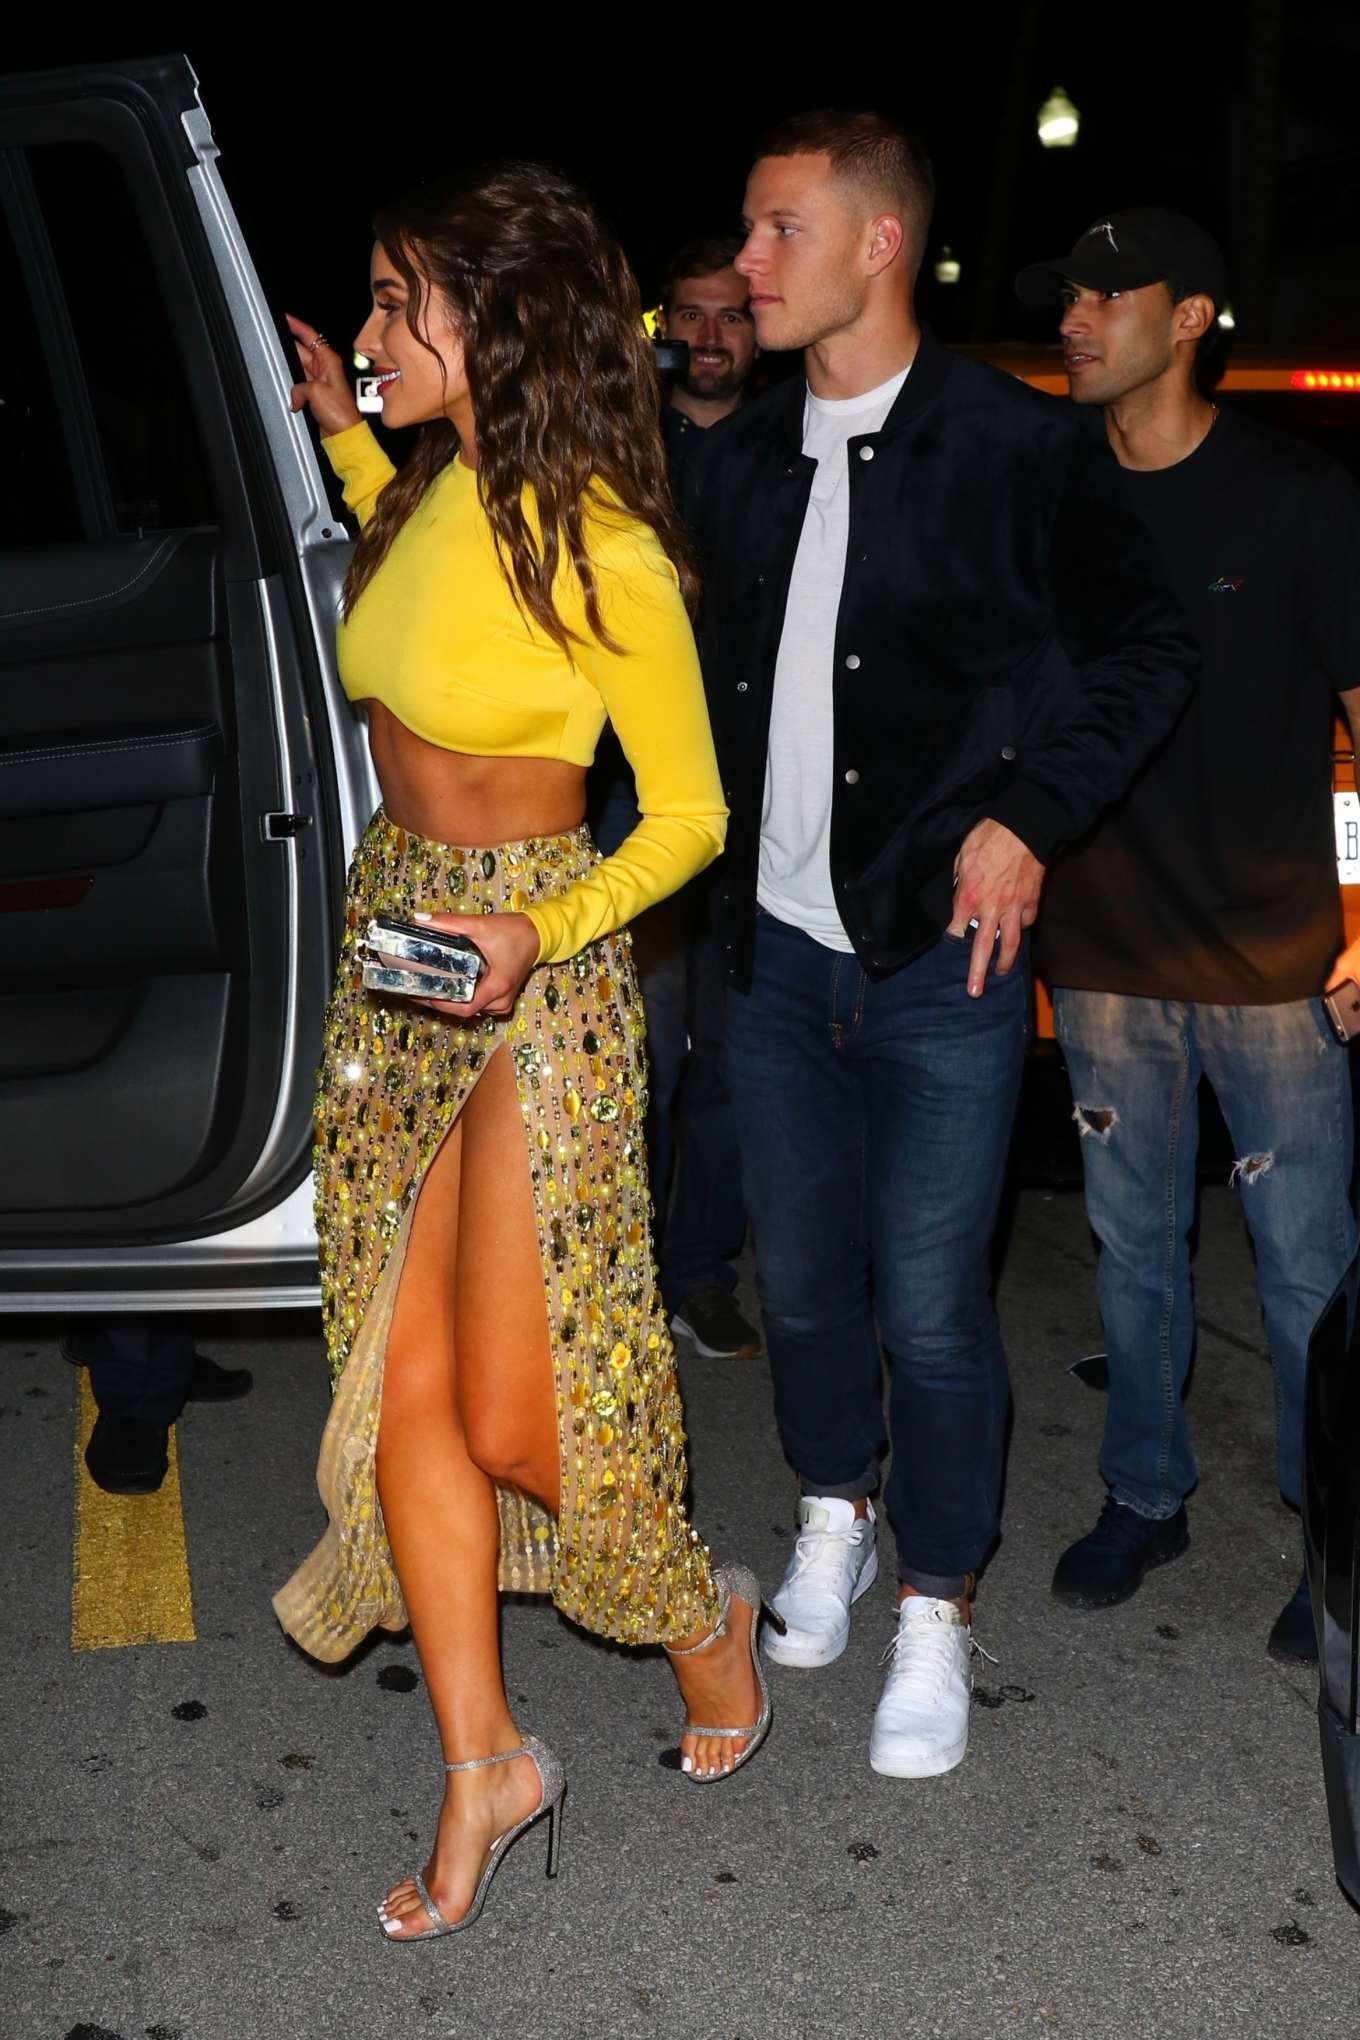 Olivia Culpo sparkled in silvery grey open toe sandals with high heel and thin straps